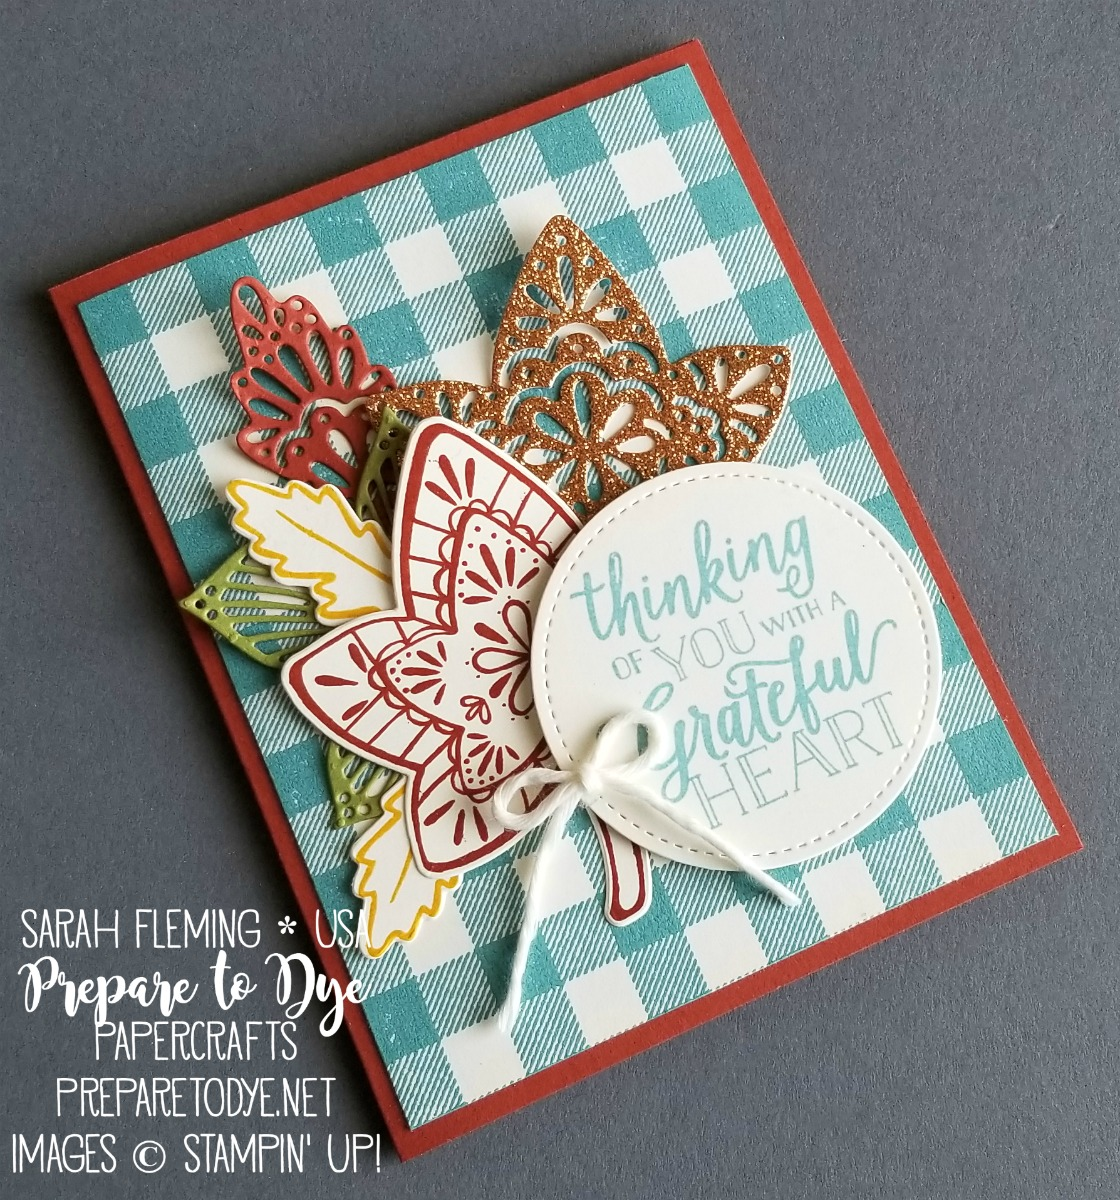 Stampin' Up! handmade fall, autumn, Thanksgiving, thank you card VIDEO TUTORIAL using Falling For Leaves bundle with Detailed Leaves framelits, Stitched Shapes framelits, Buffalo Check background stamp, Festive Farmhouse Cotton Twine - Sarah Fleming - Prepare to Dye Papercrafts